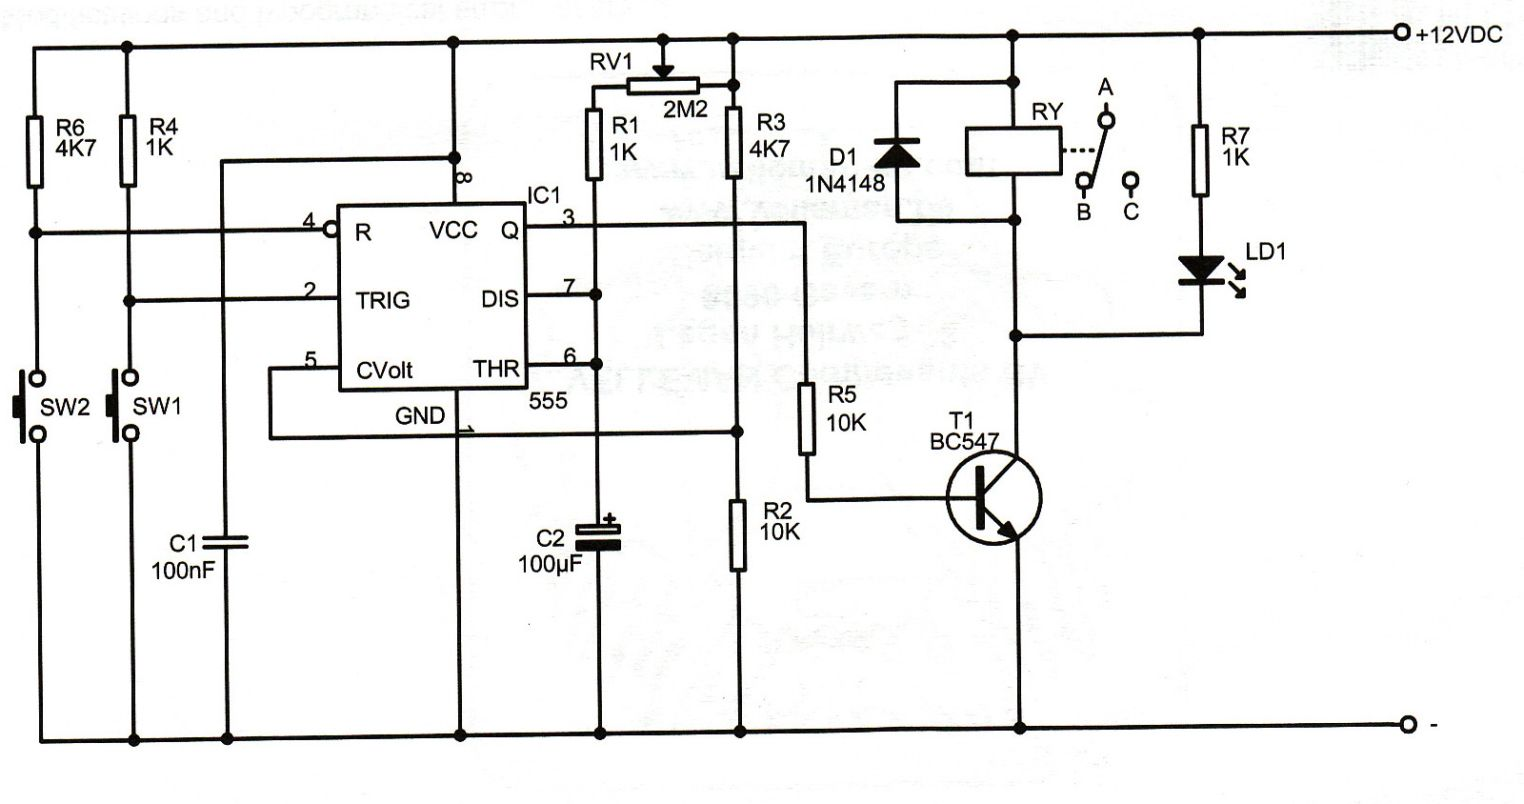 off delay timer wiring diagram white rodgers thermostat 1f89 211 relay database